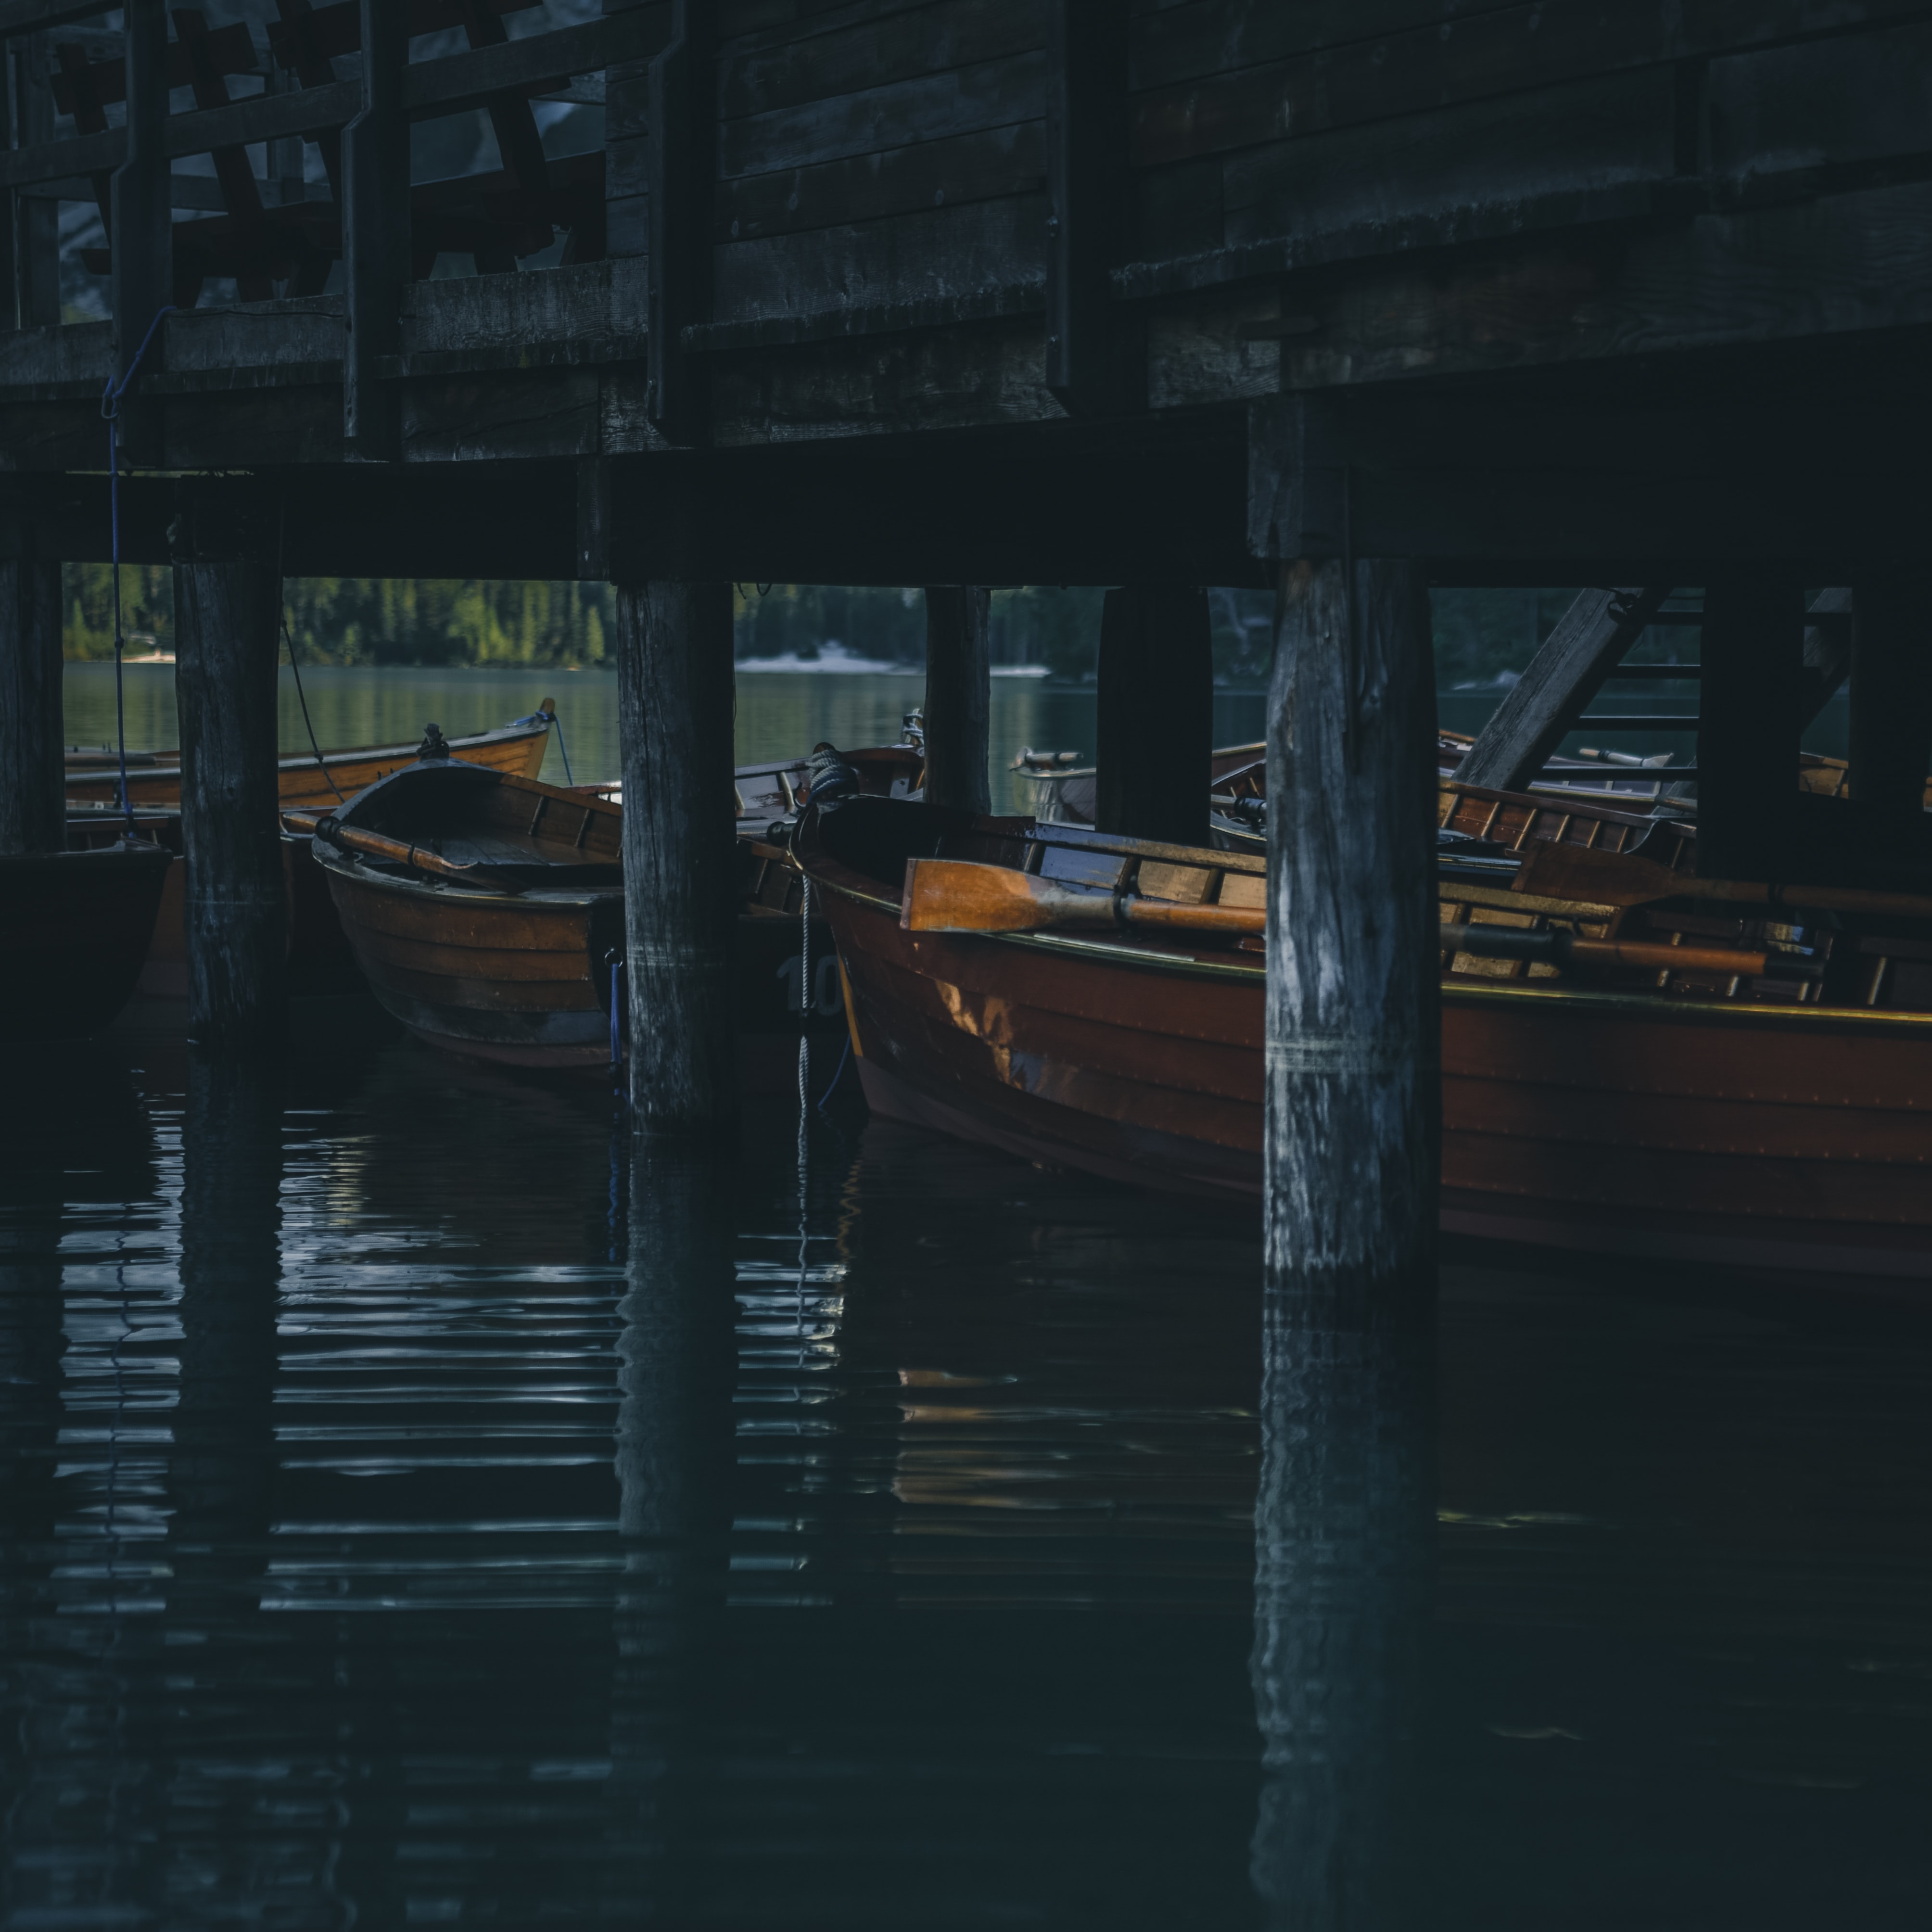 boats under the dock